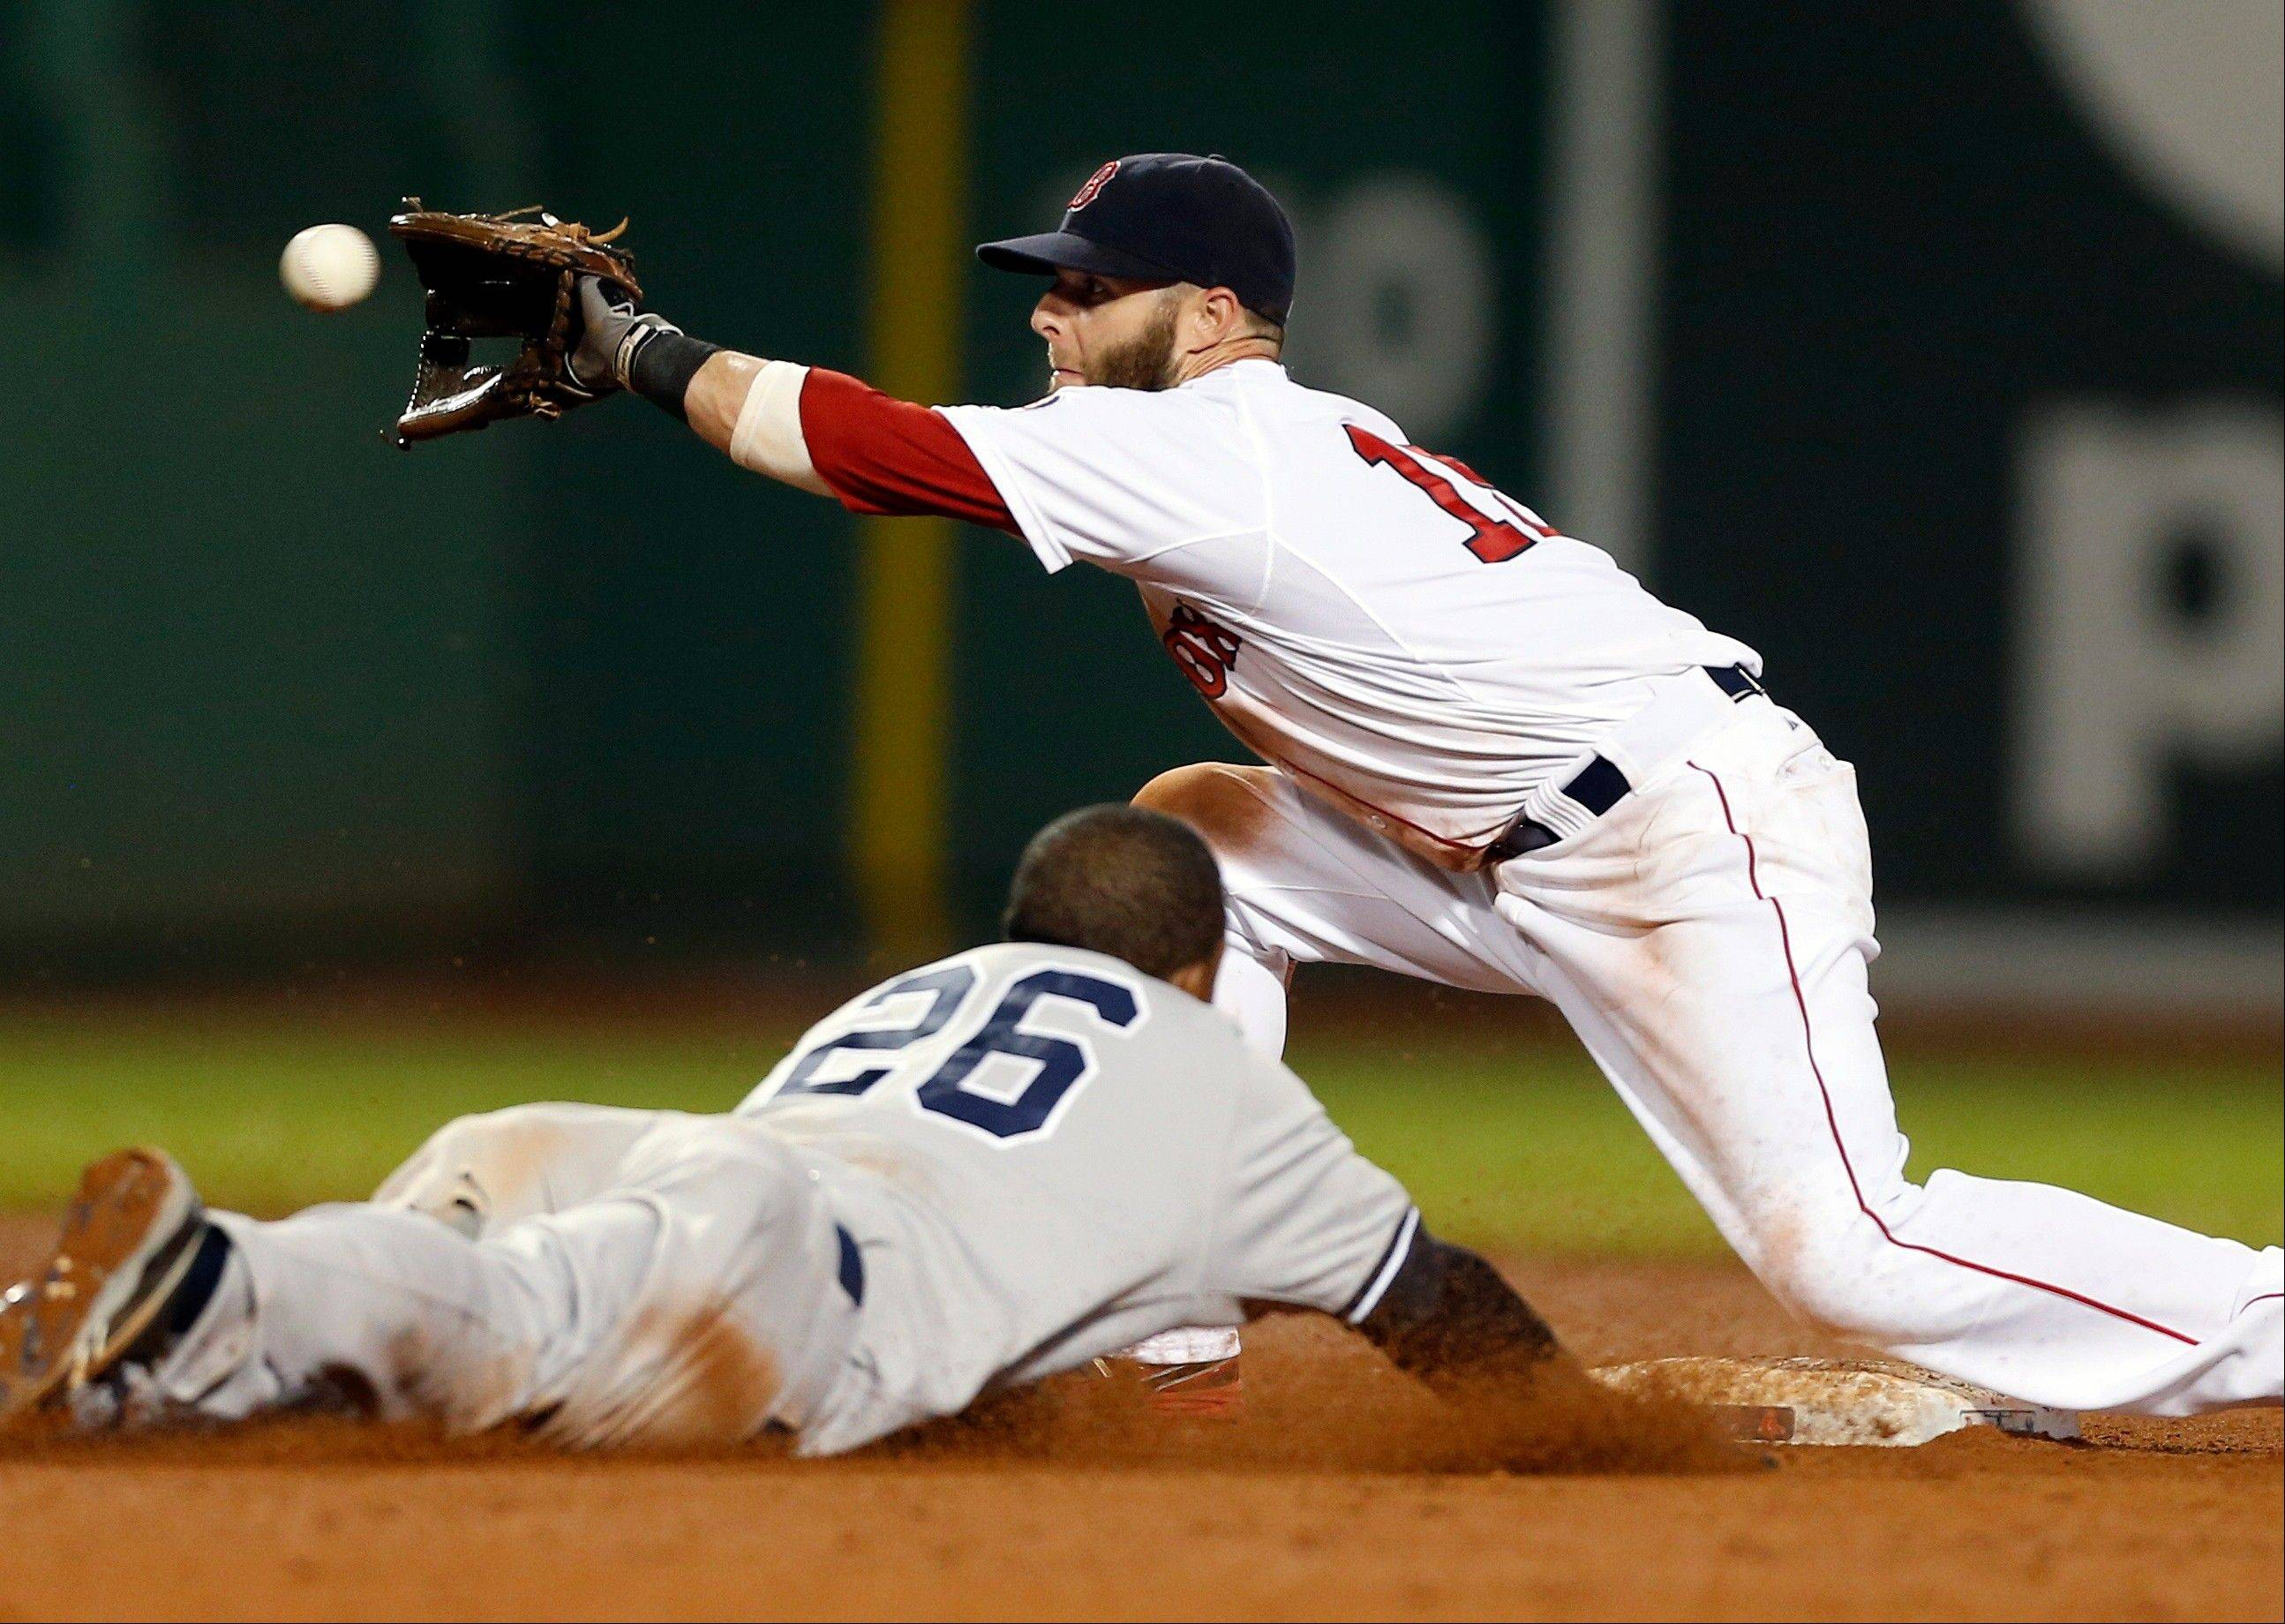 Boston Red Sox's Dustin Pedroia gets the throw before tagging out New York Yankees' Eduardo Nunez (26), who was trying to steal second base in the 11th inning of a baseball game in Boston, early Monday, July 22, 2013. The Red Sox won 8-7 in 11 innings.